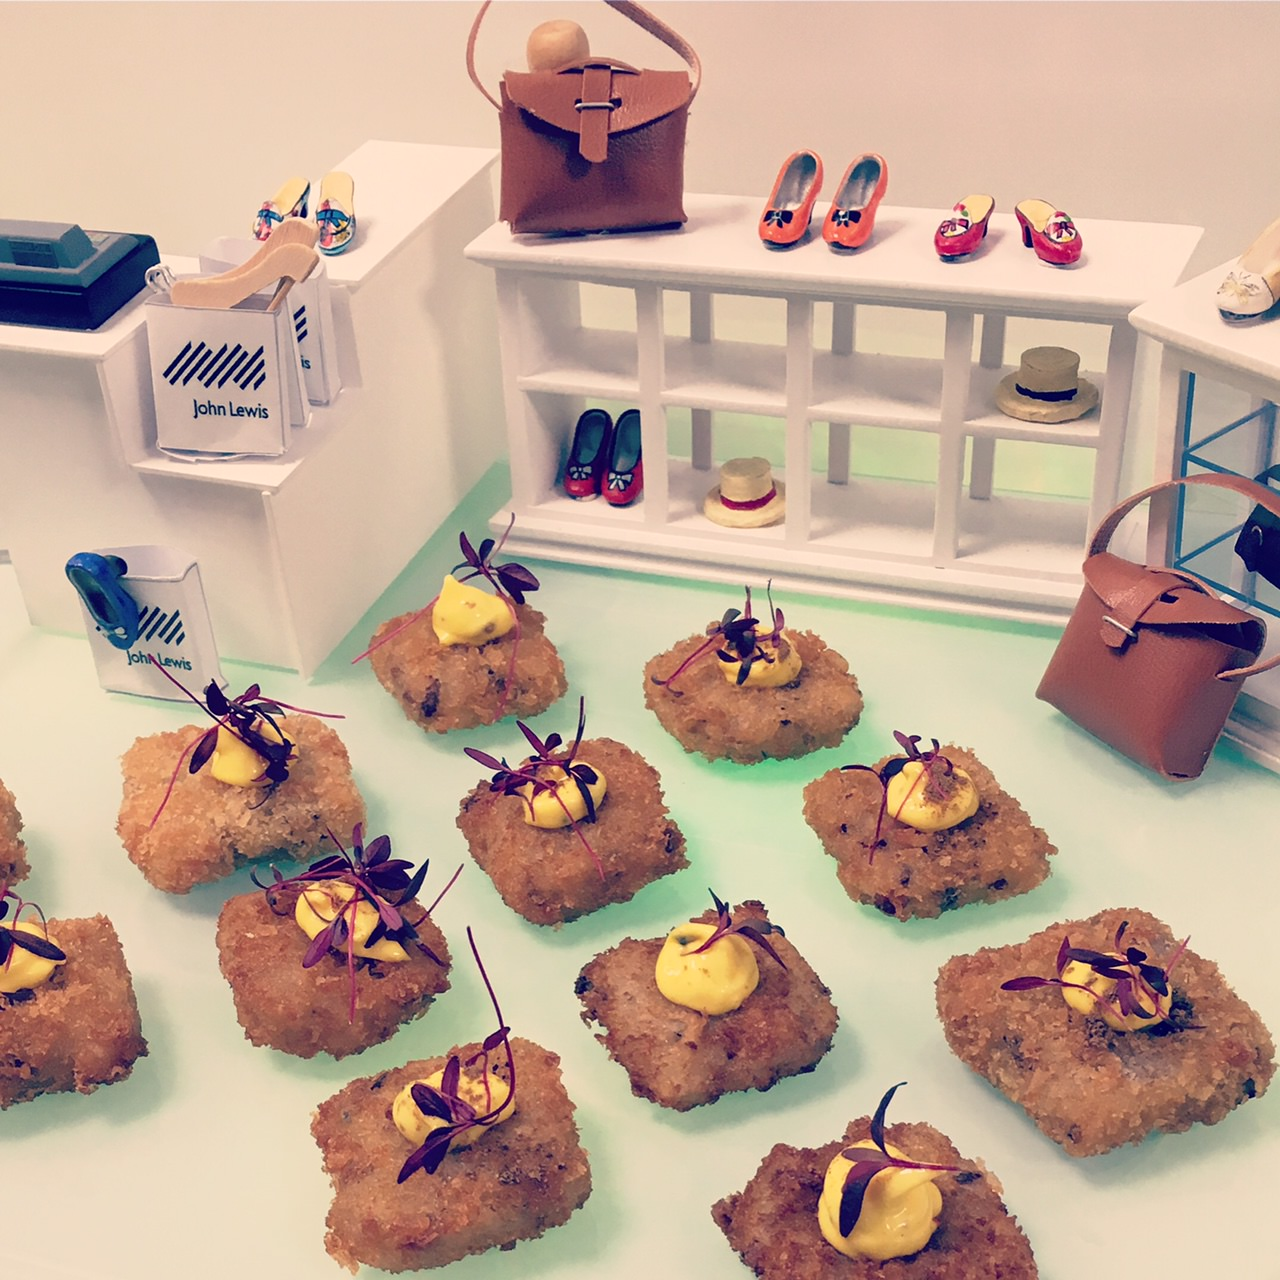 Canape Display for the John Lewis Leeds Launch